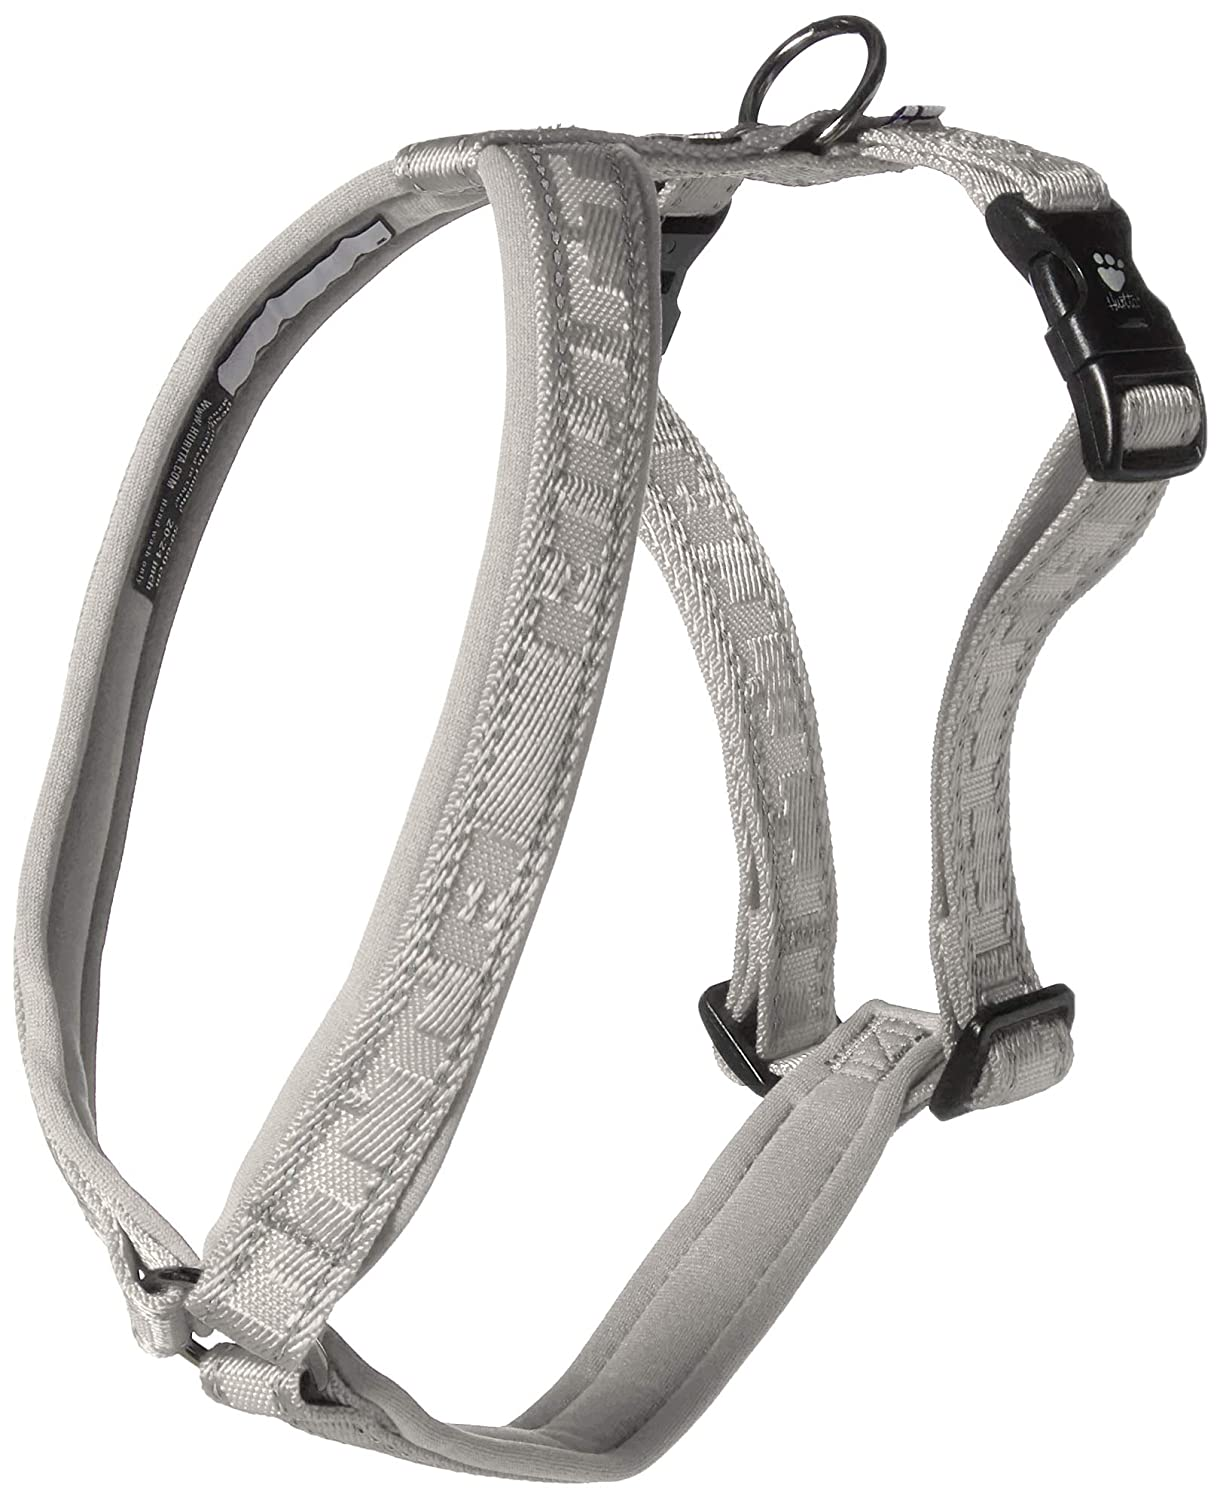 Hurtta Casual Perro Acolchado Y-Harness, Ceniza, 45,72 cm: Amazon ...